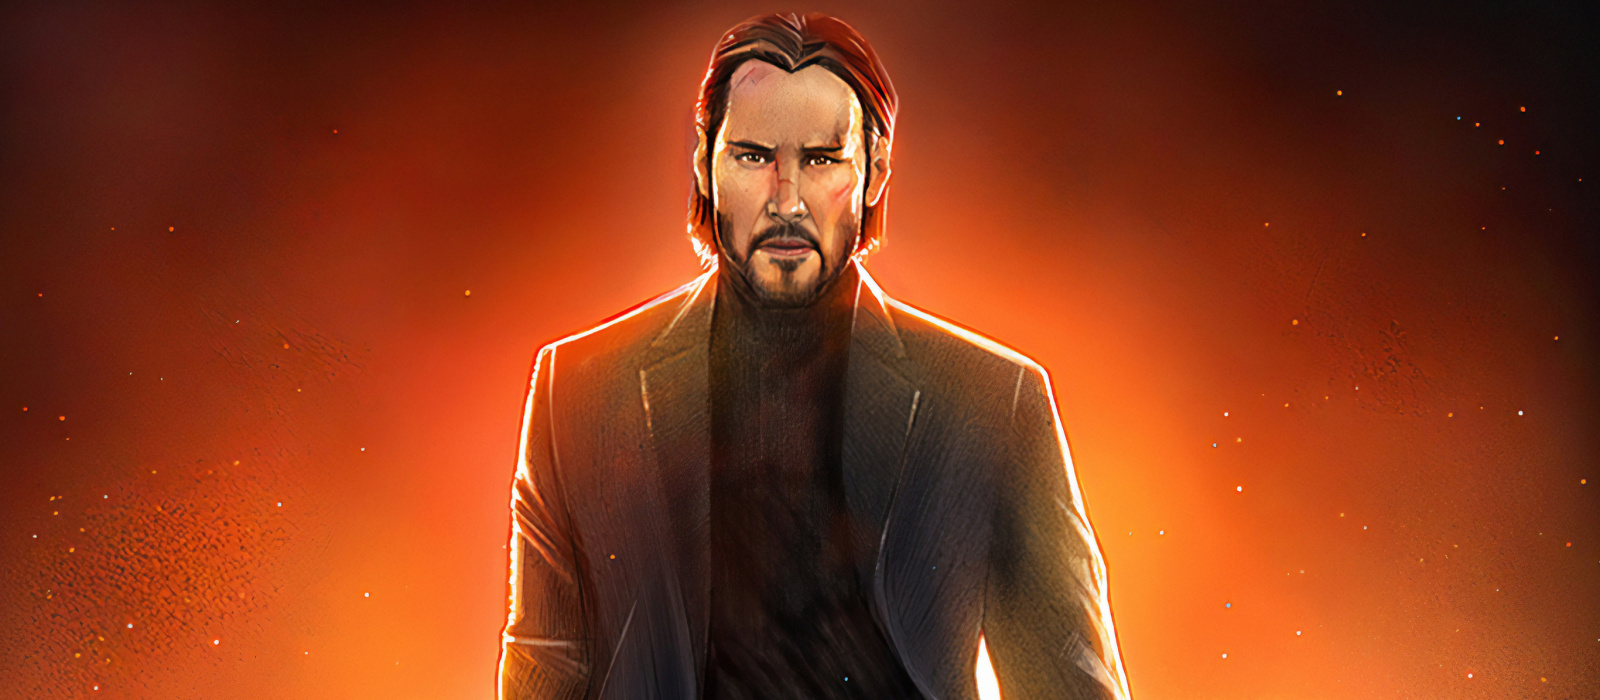 Top 10 celebrities who love video games: what Keanu Reeves, Barack Obama and Vin Diesel are doing